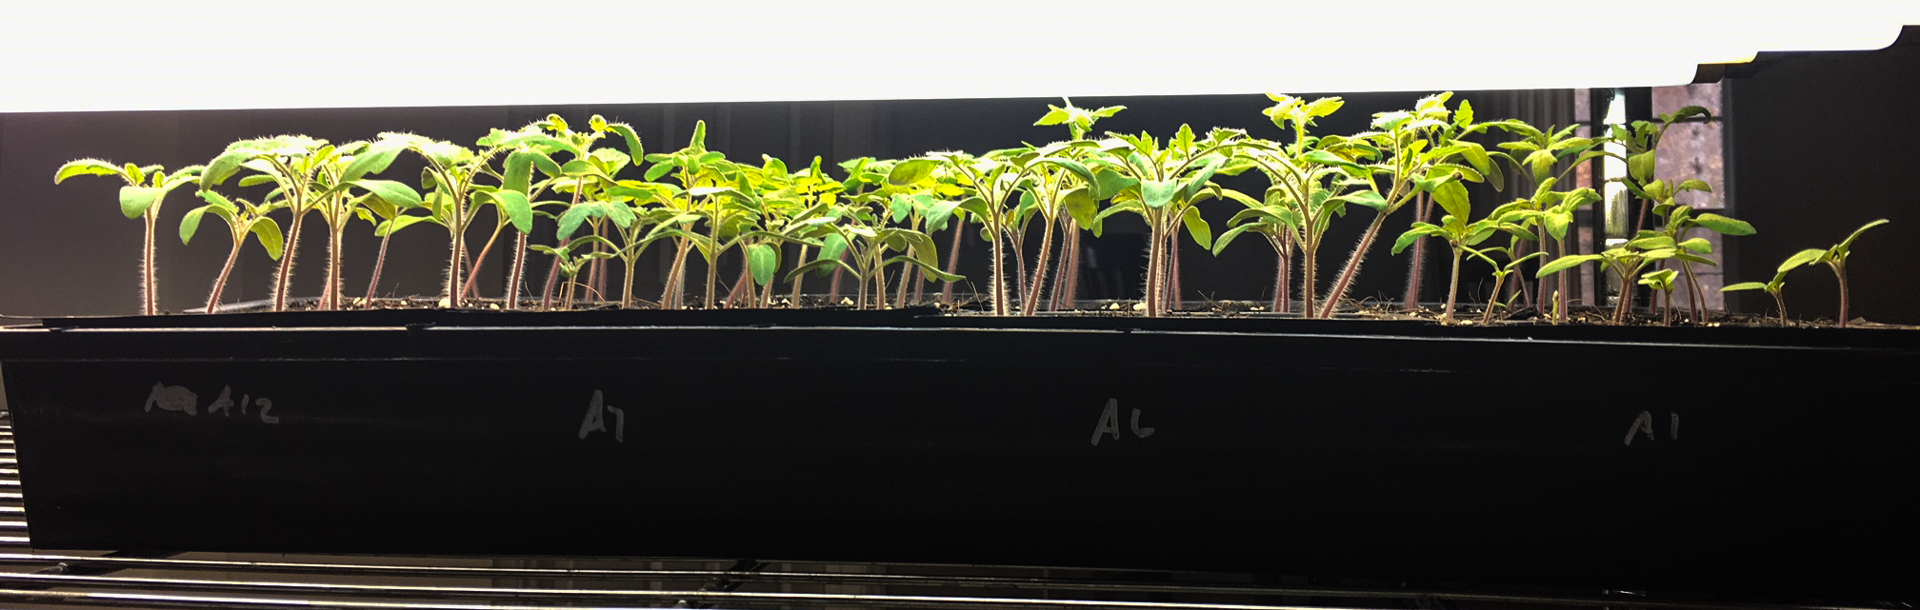 DIY grow lights: easily grow garden seedlings, microgreens, and more thumbnail